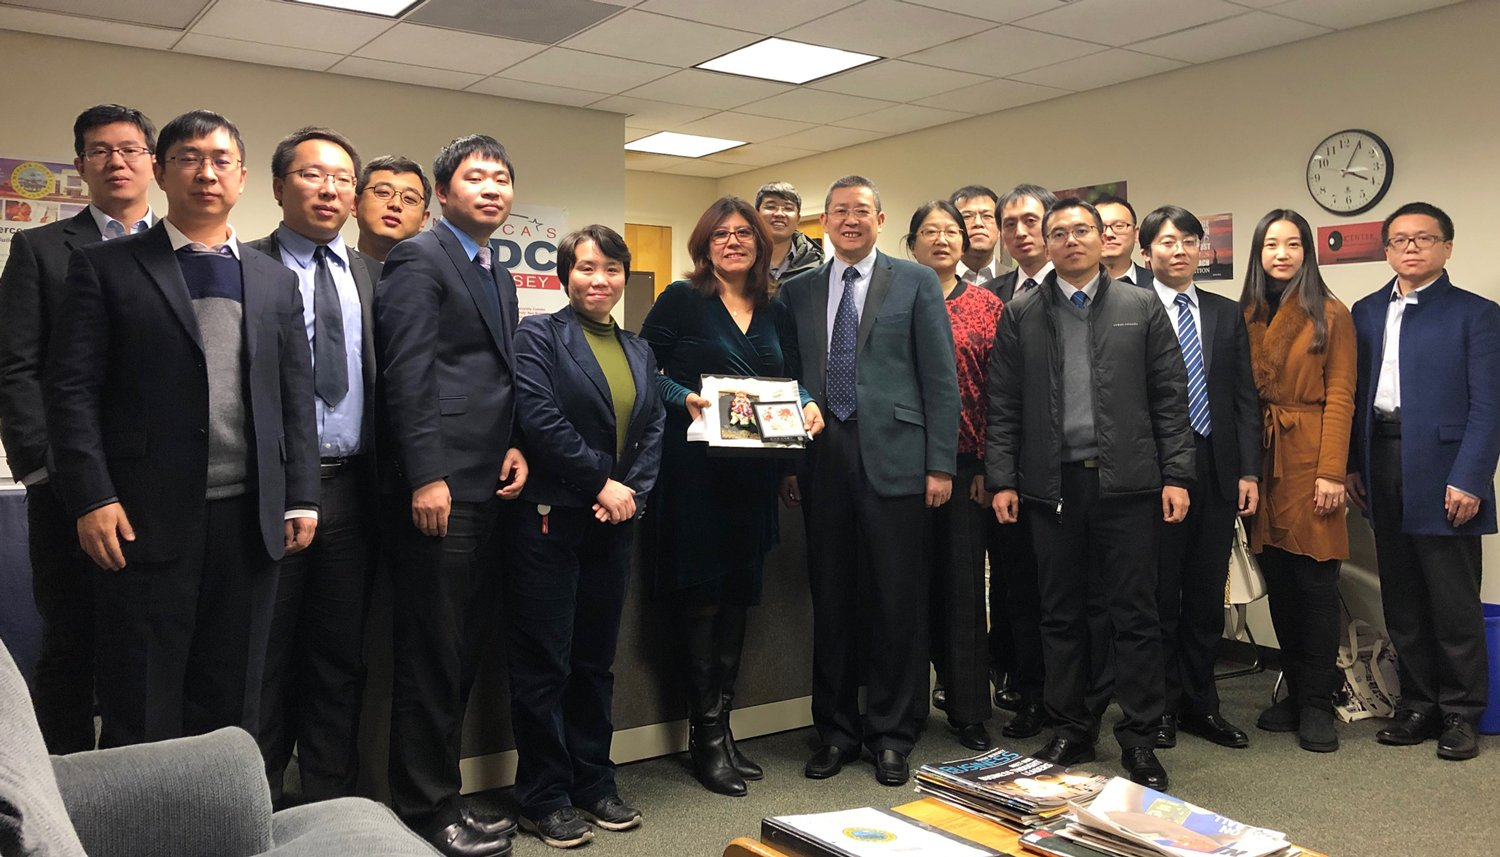 The visiting Chinese delegation included 15 officials and professionals from China's State Administration for Market Regulations, along with Regional Director Lilian Mauro (center).